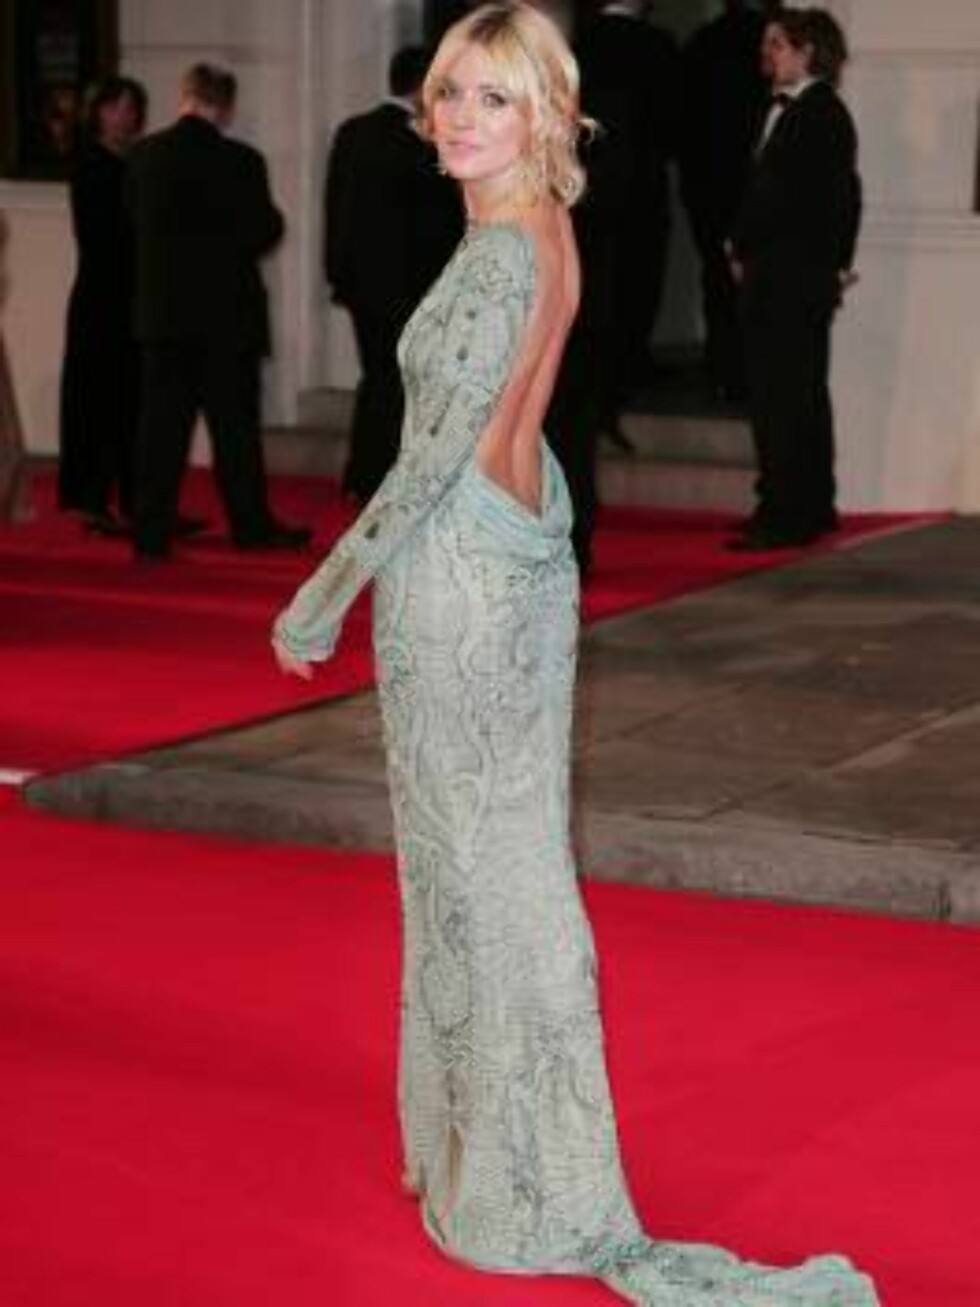 London 2007-02-11  Sienna Miller arriving  at the Orange British Academy Film Awards held at the Royal Opera House in London. Photo:  Axel  Code: 3008  COPYRIGHT STELLA PICTURES Foto: Stella Pictures